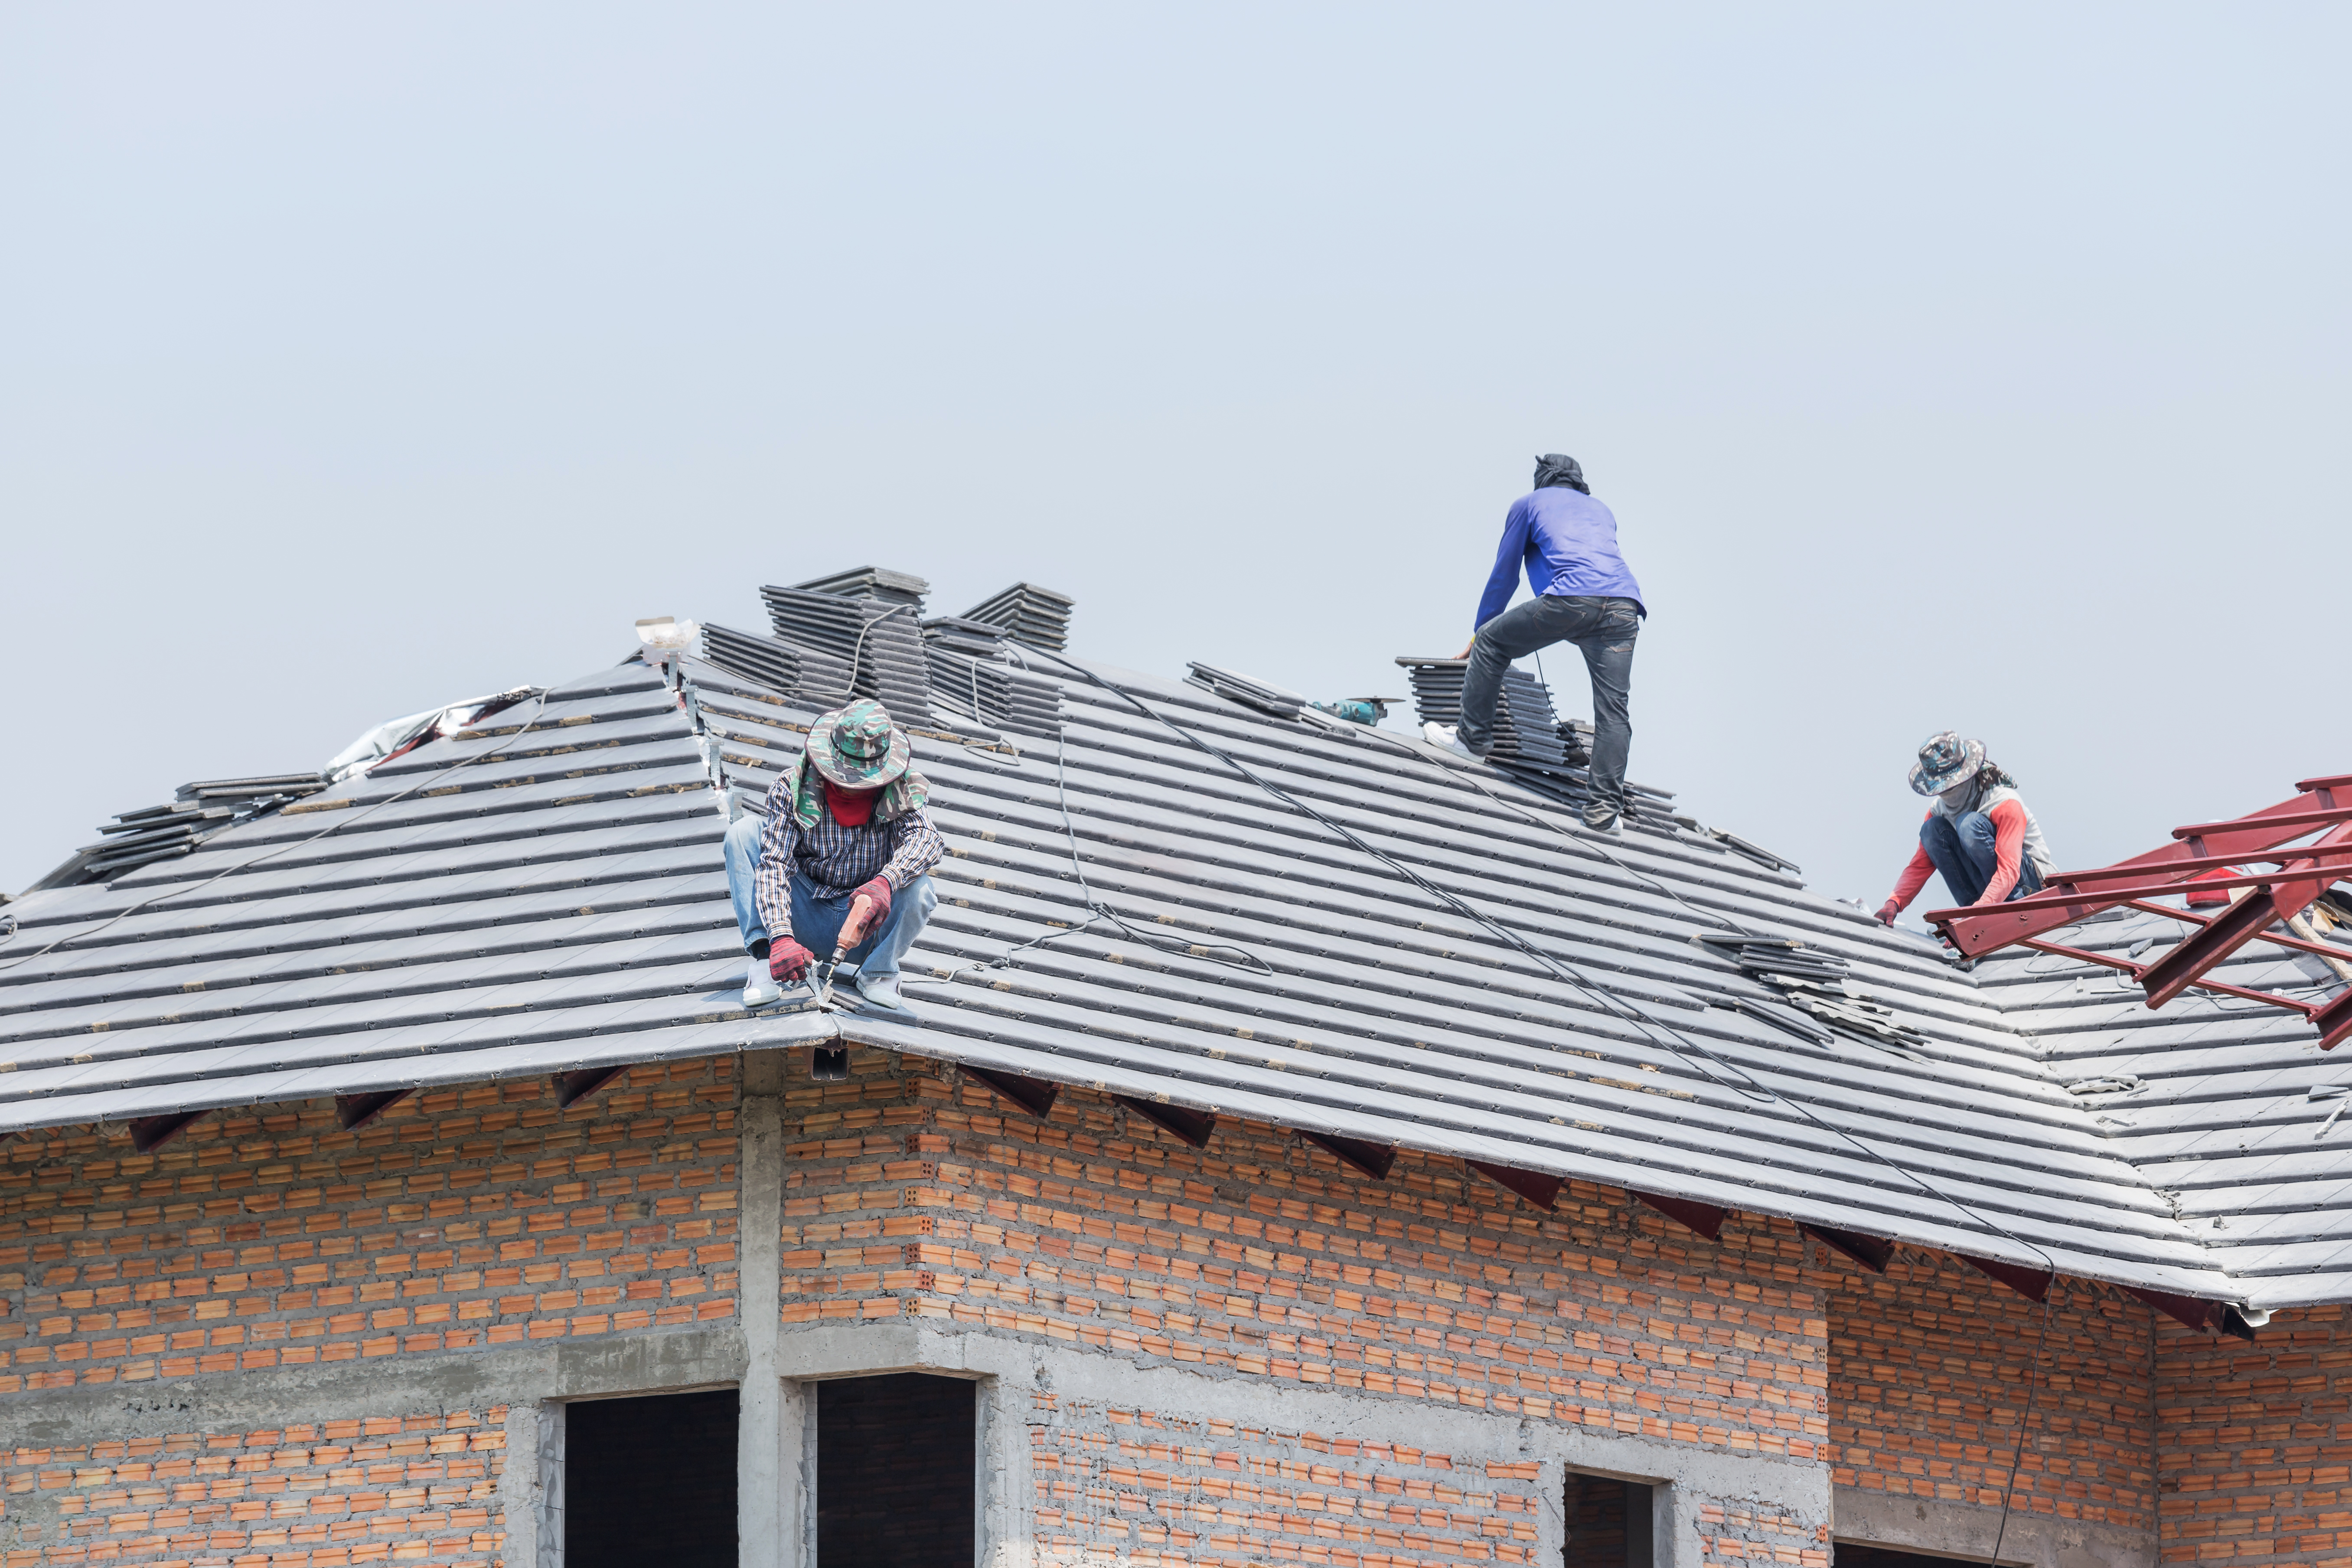 Workers installing concrete tiles on the roof while roofing house in construction site